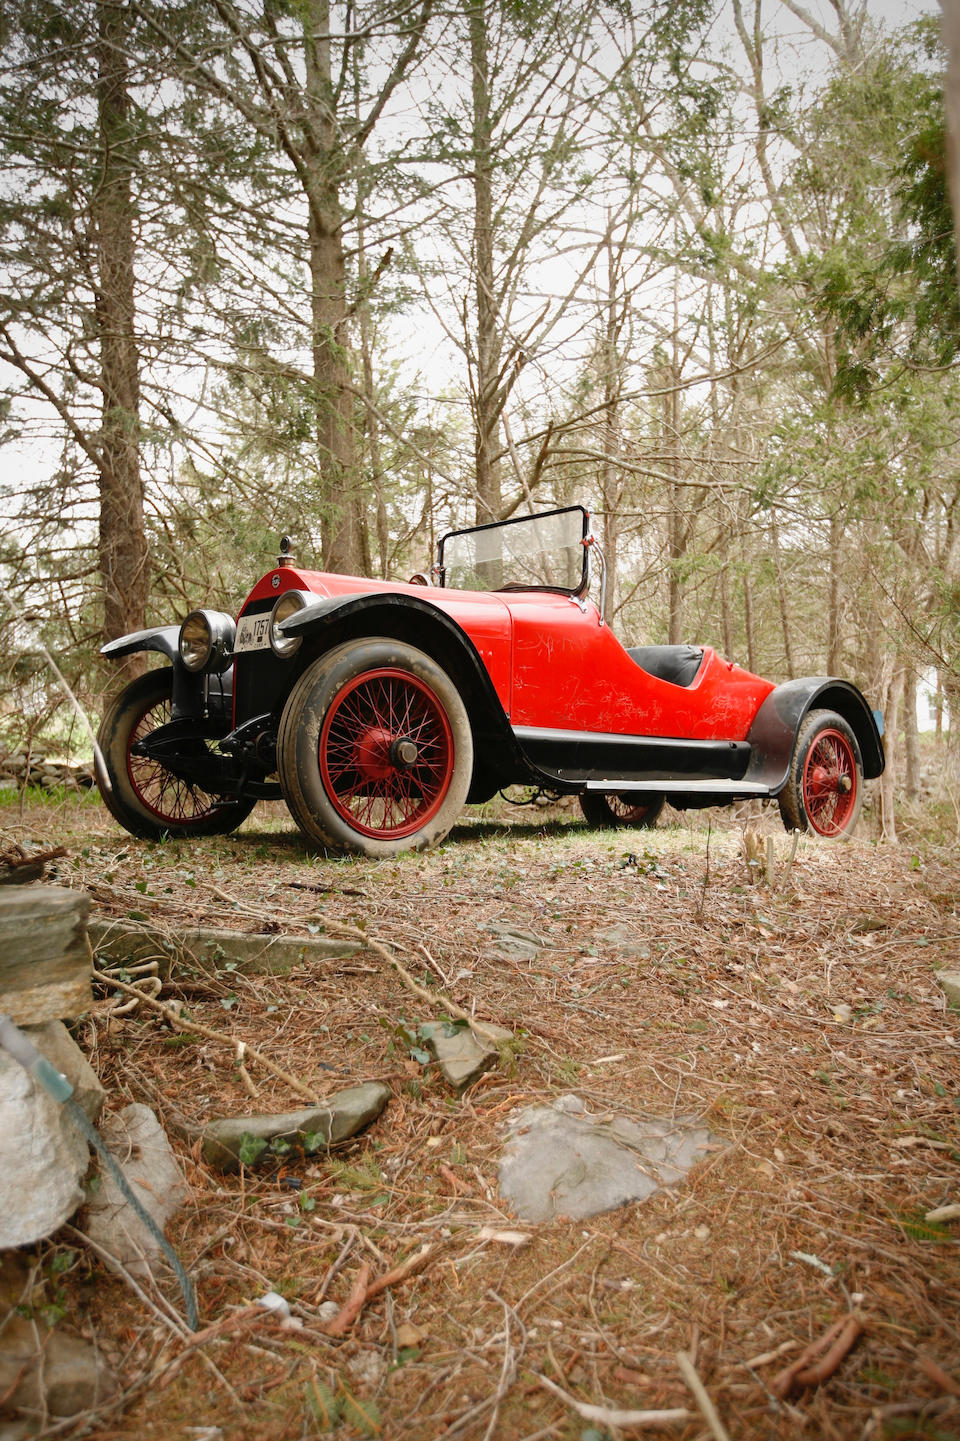 <b>1919 Stutz Model G Roadster</b><br />Chassis no. 4366